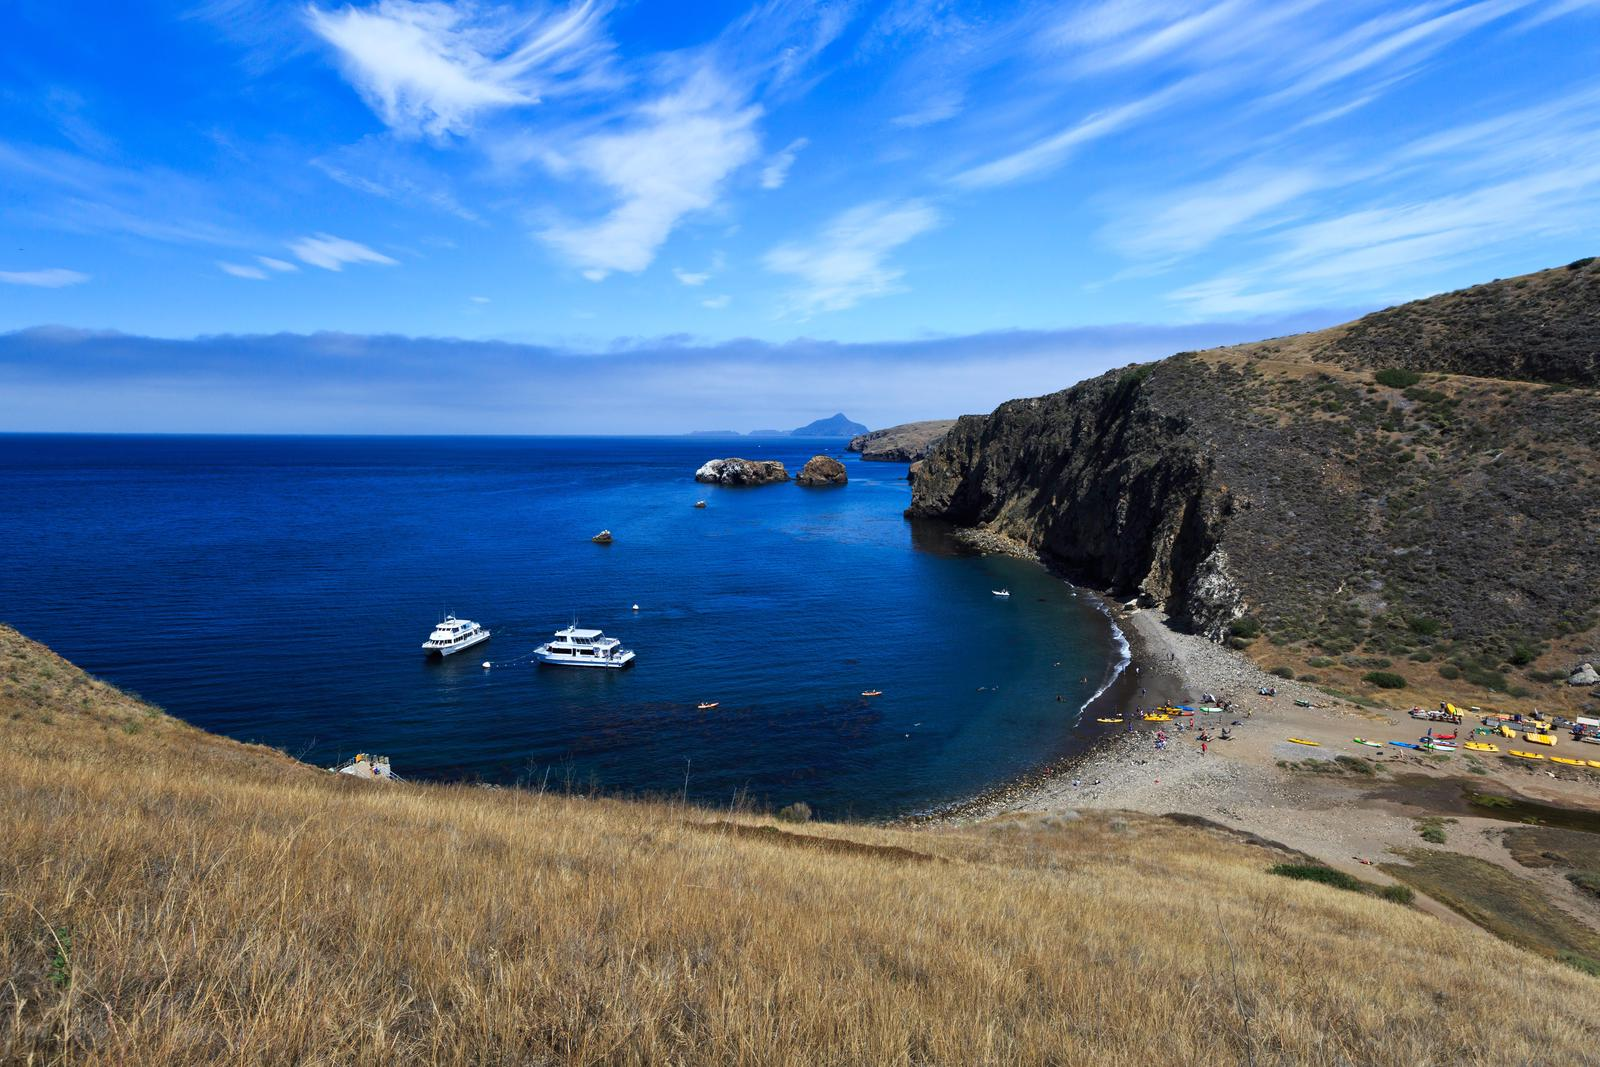 Harbor with boats, kayaks, and visitors on the beach. Steep island cliffs and other islands in the distance. Scorpion Anchorage, Santa Cruz Island